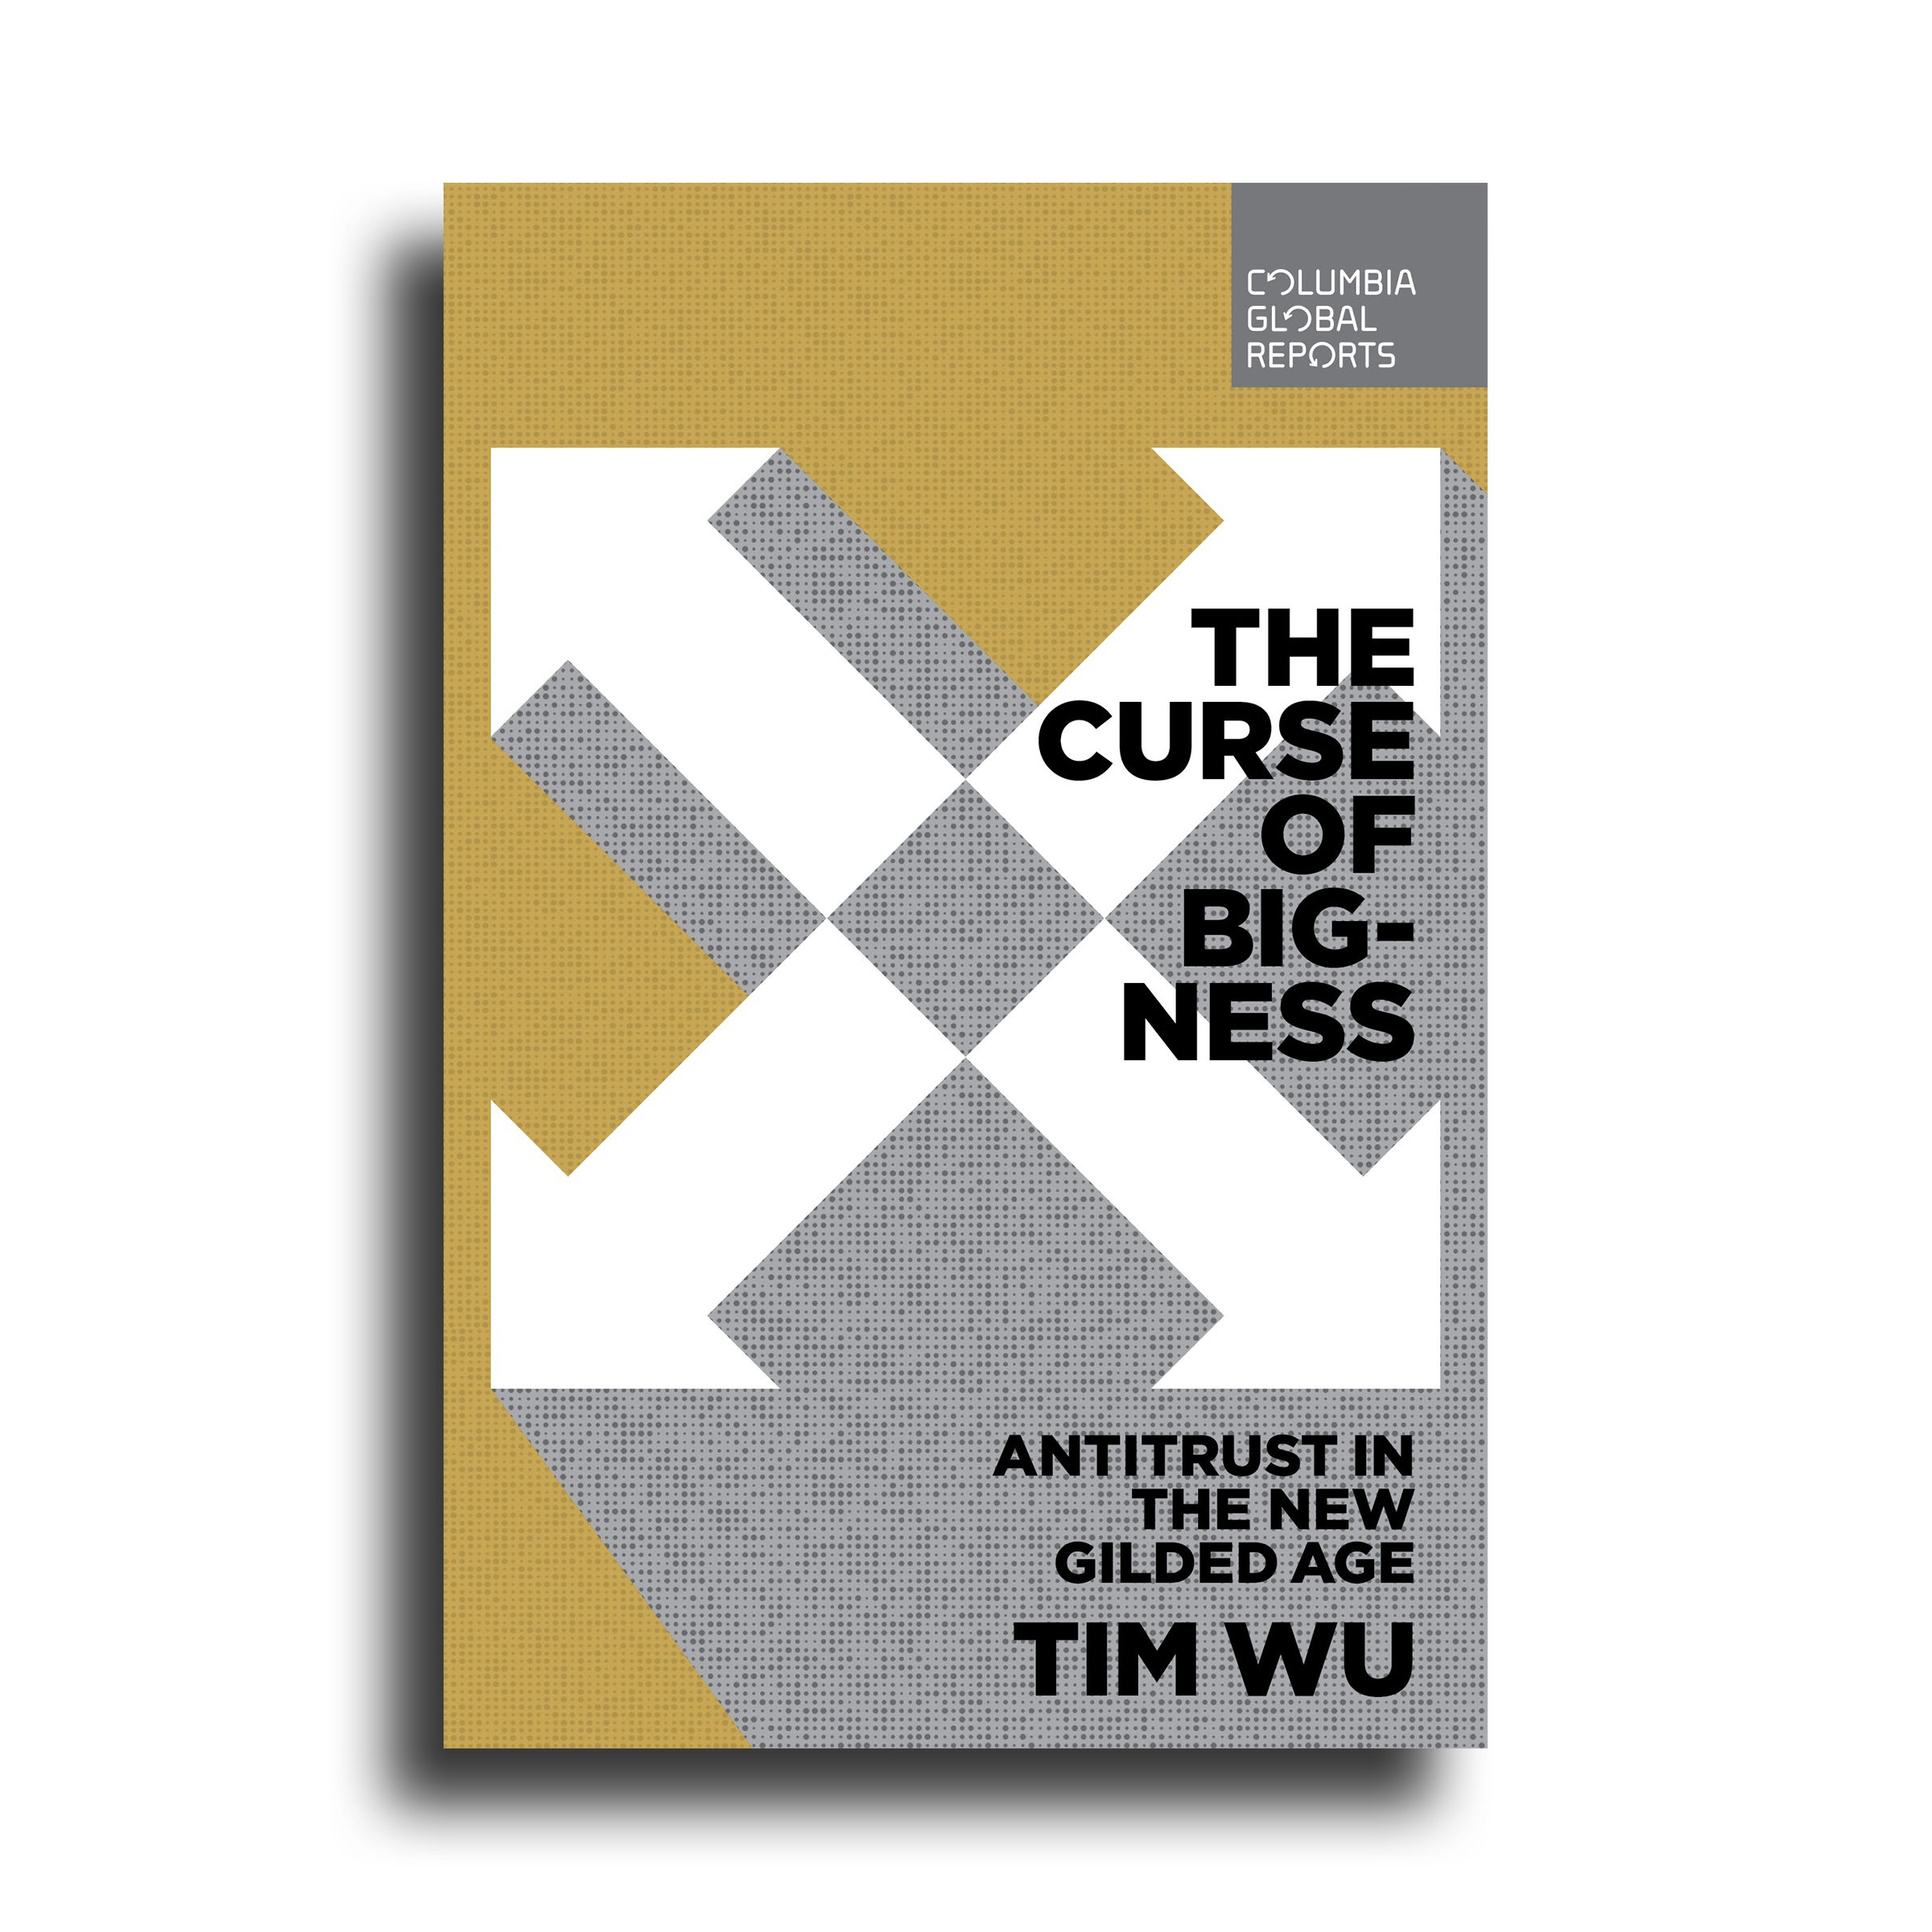 Tim Wu's book-- The Curse of Bigness: Antitrust in the New Gilded Age.